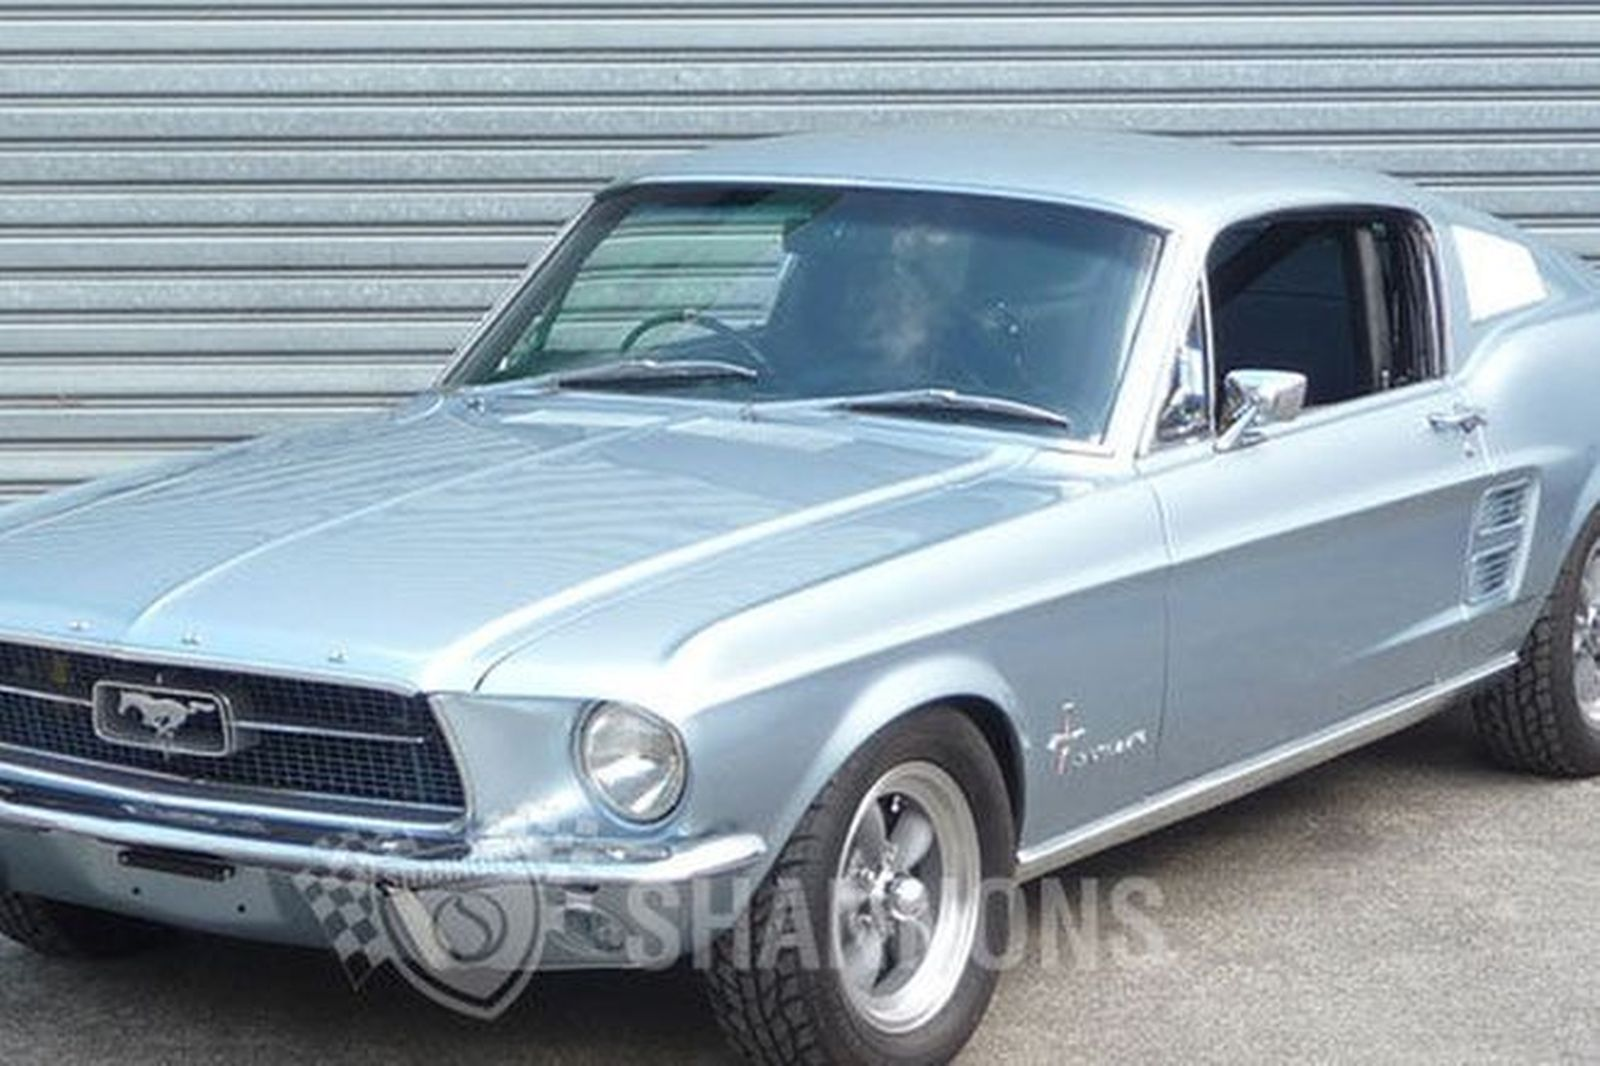 Ford Mustang Fastback (RHD)